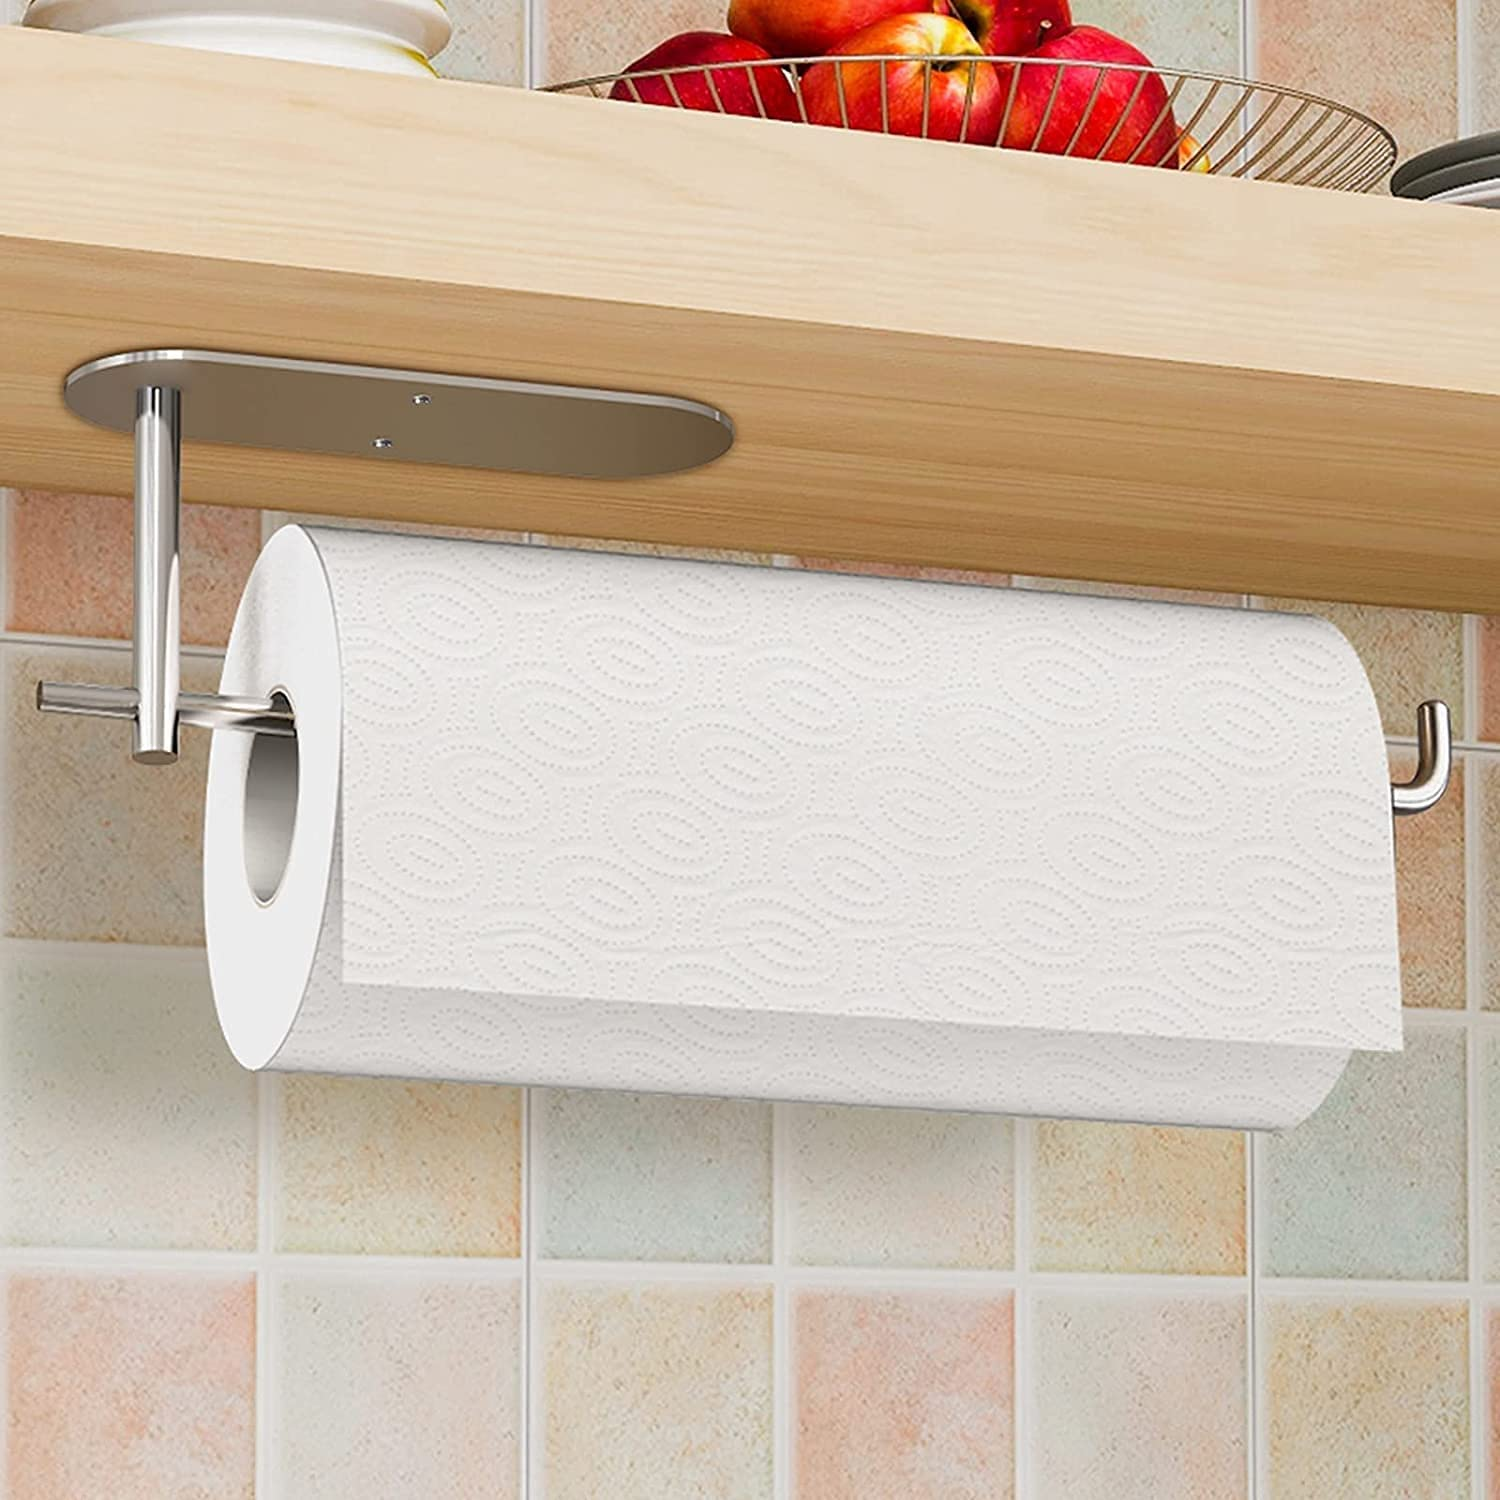 Max 71% OFF Paper Towel Holder for 13.39''x3.35''x1.97'' outlet Self-Adhesi Kitchen